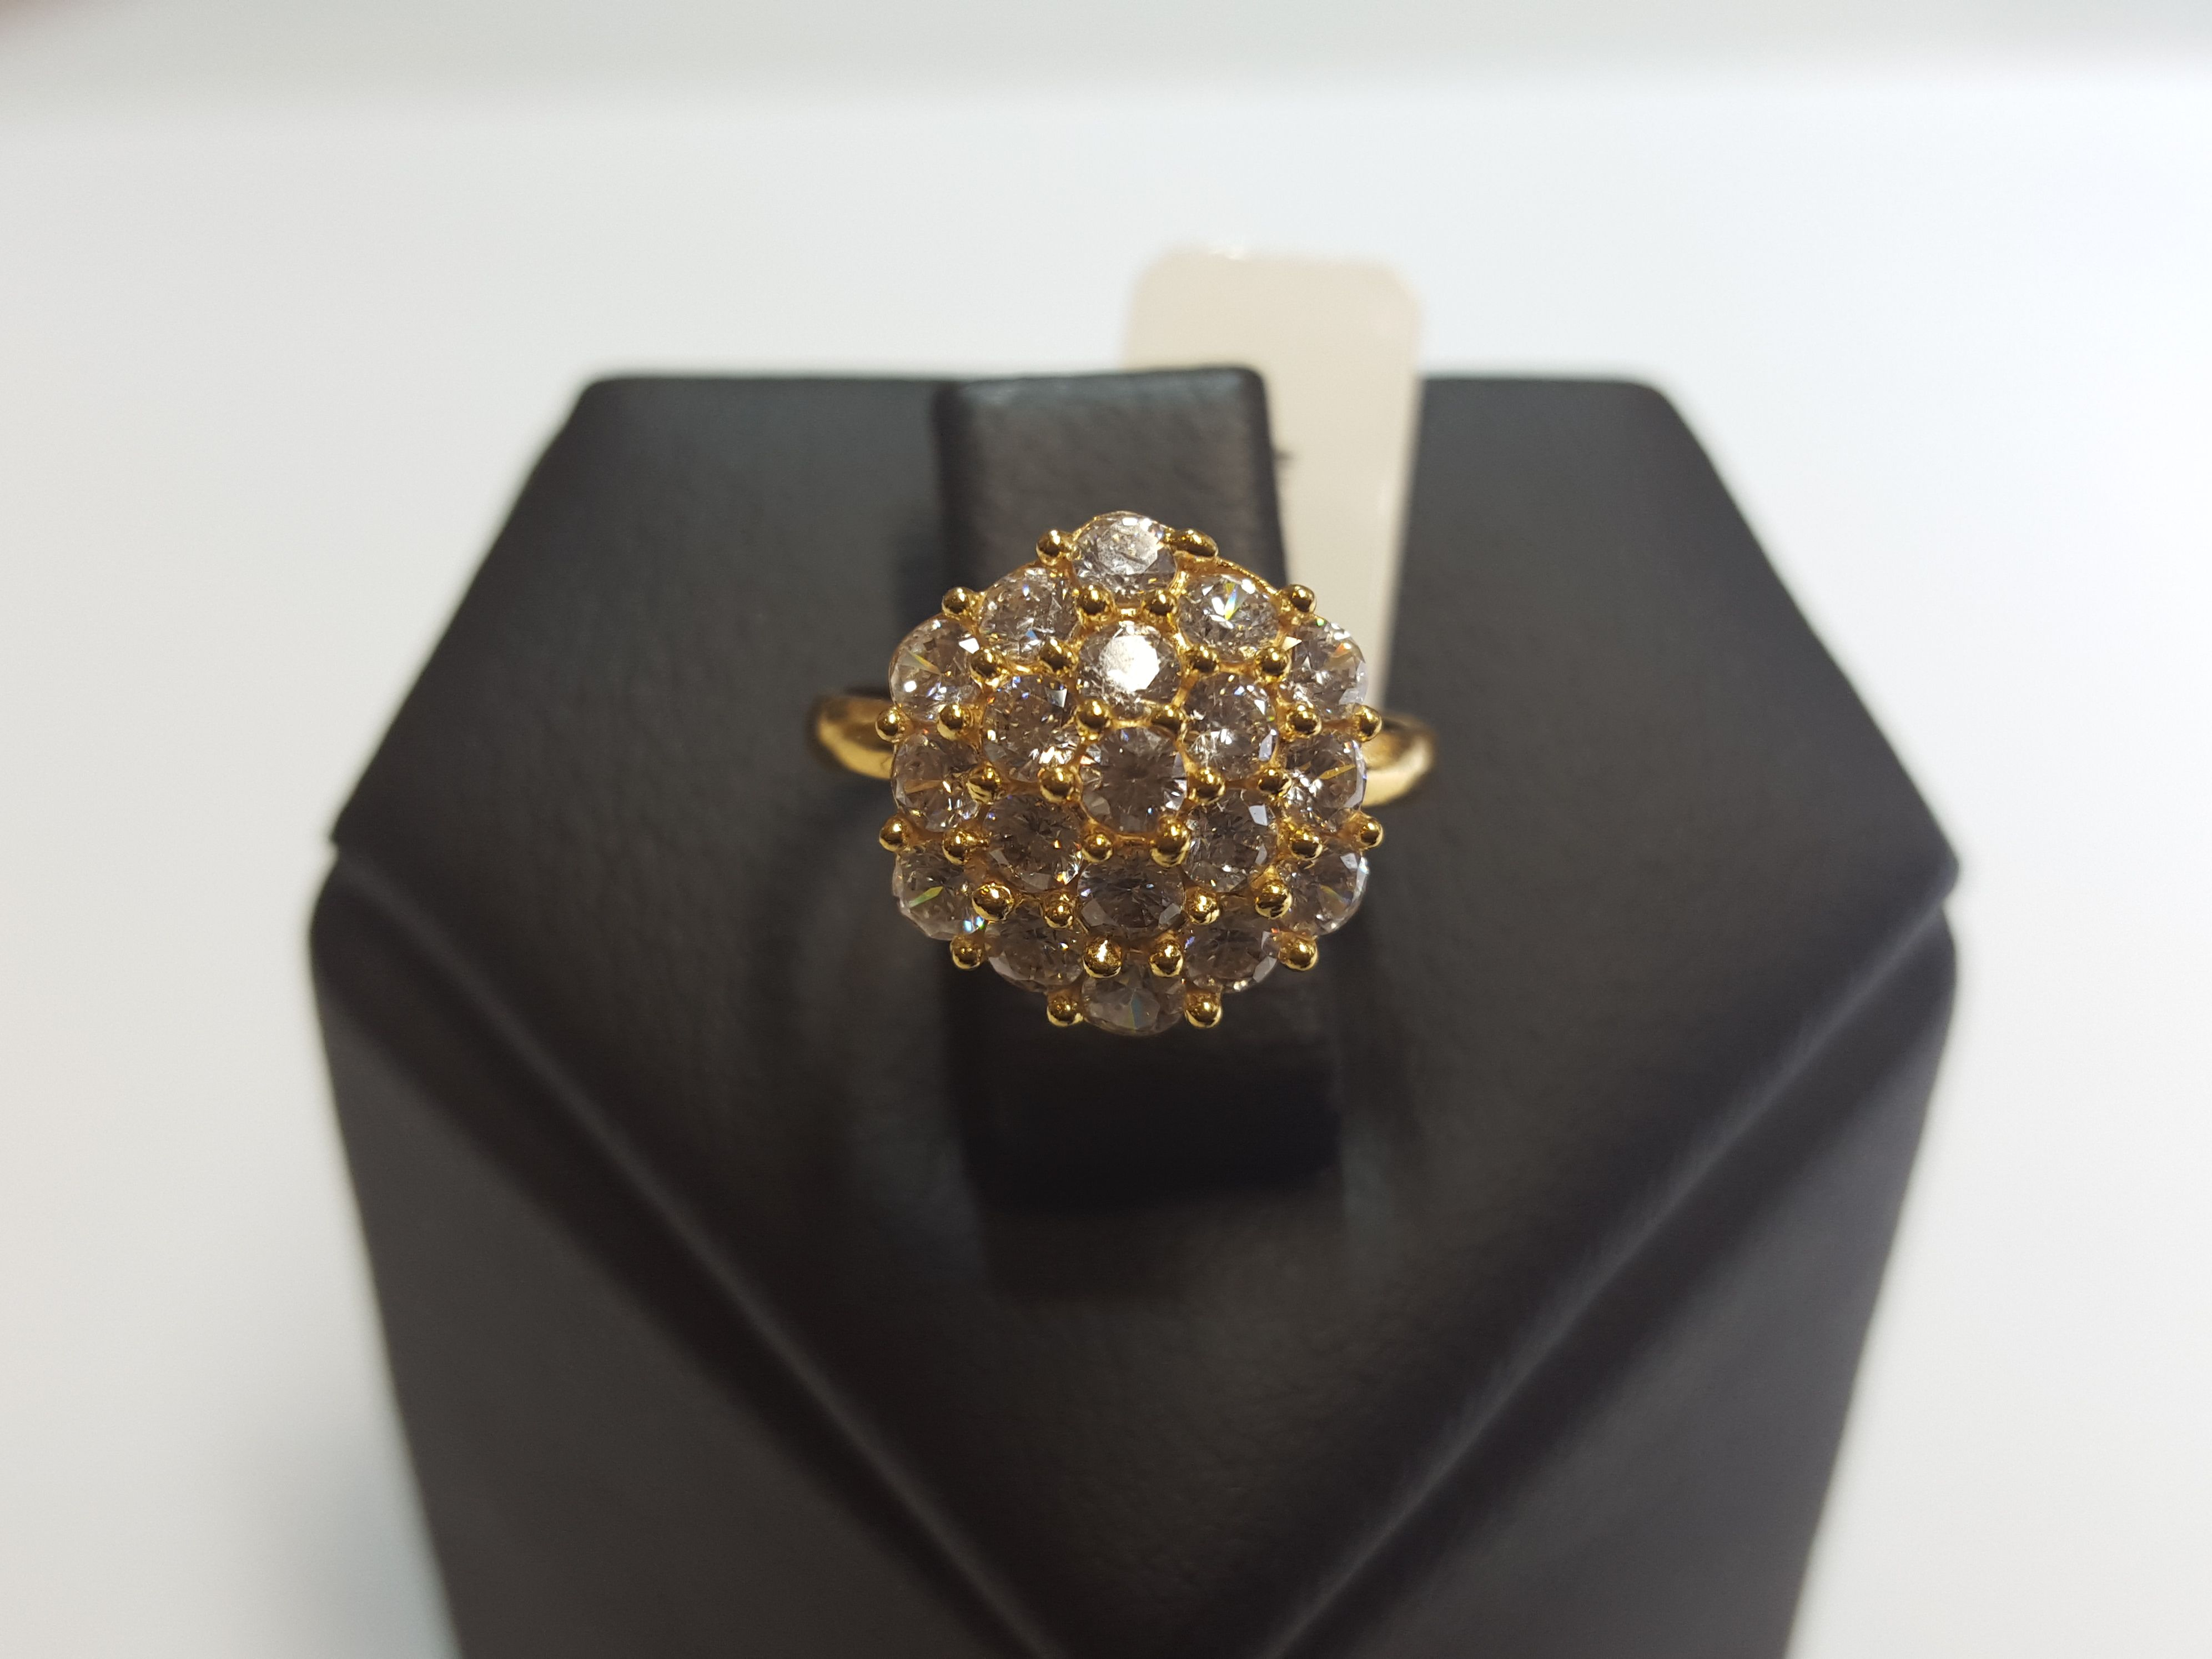 22ct Gold CZ Ring GR293 ABDs 22ct Gold Jewellery Collection